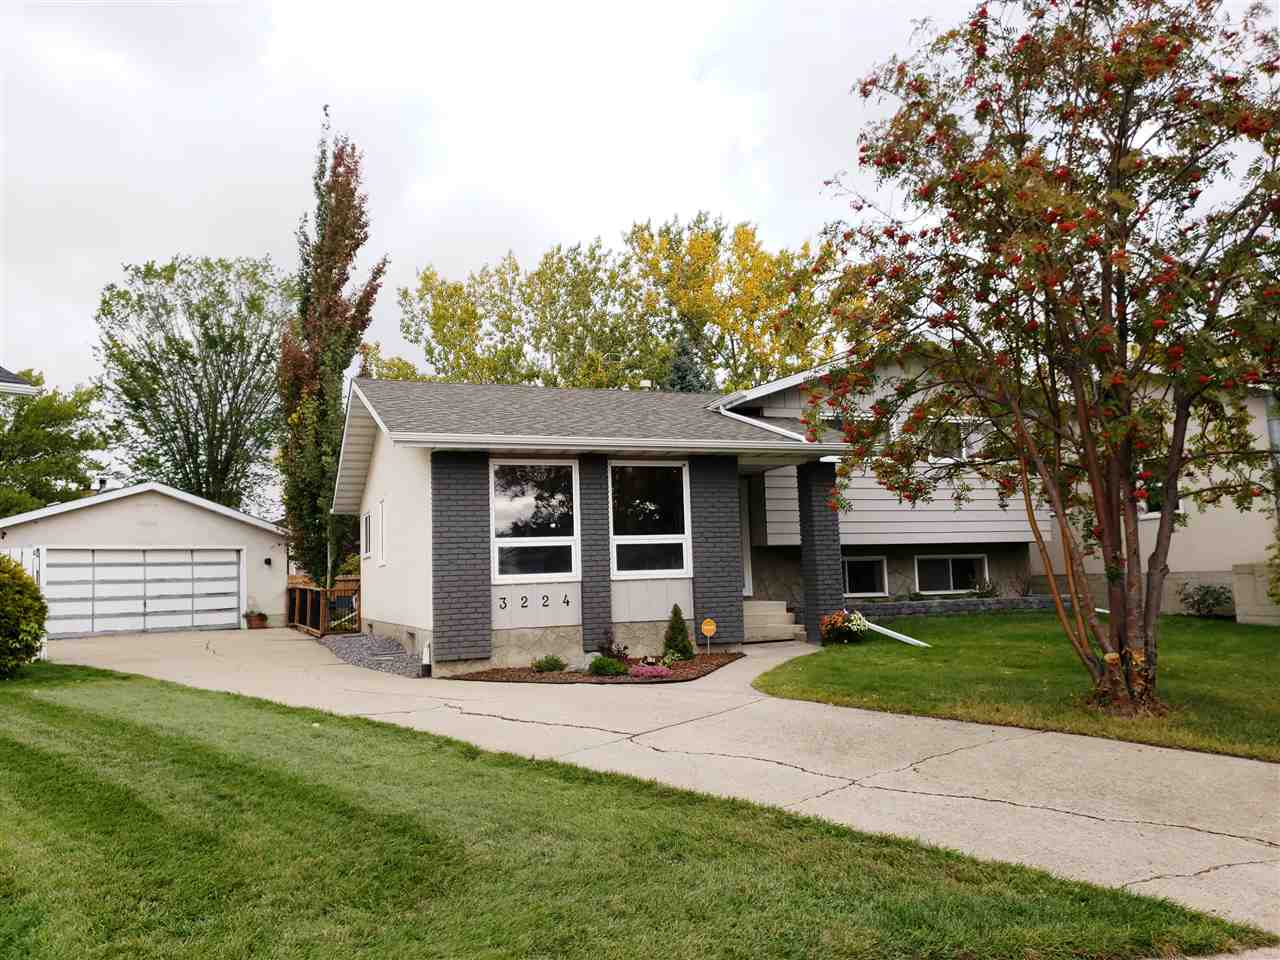 3224 131 Avenue, 4 bed, 3 bath, at $362,500